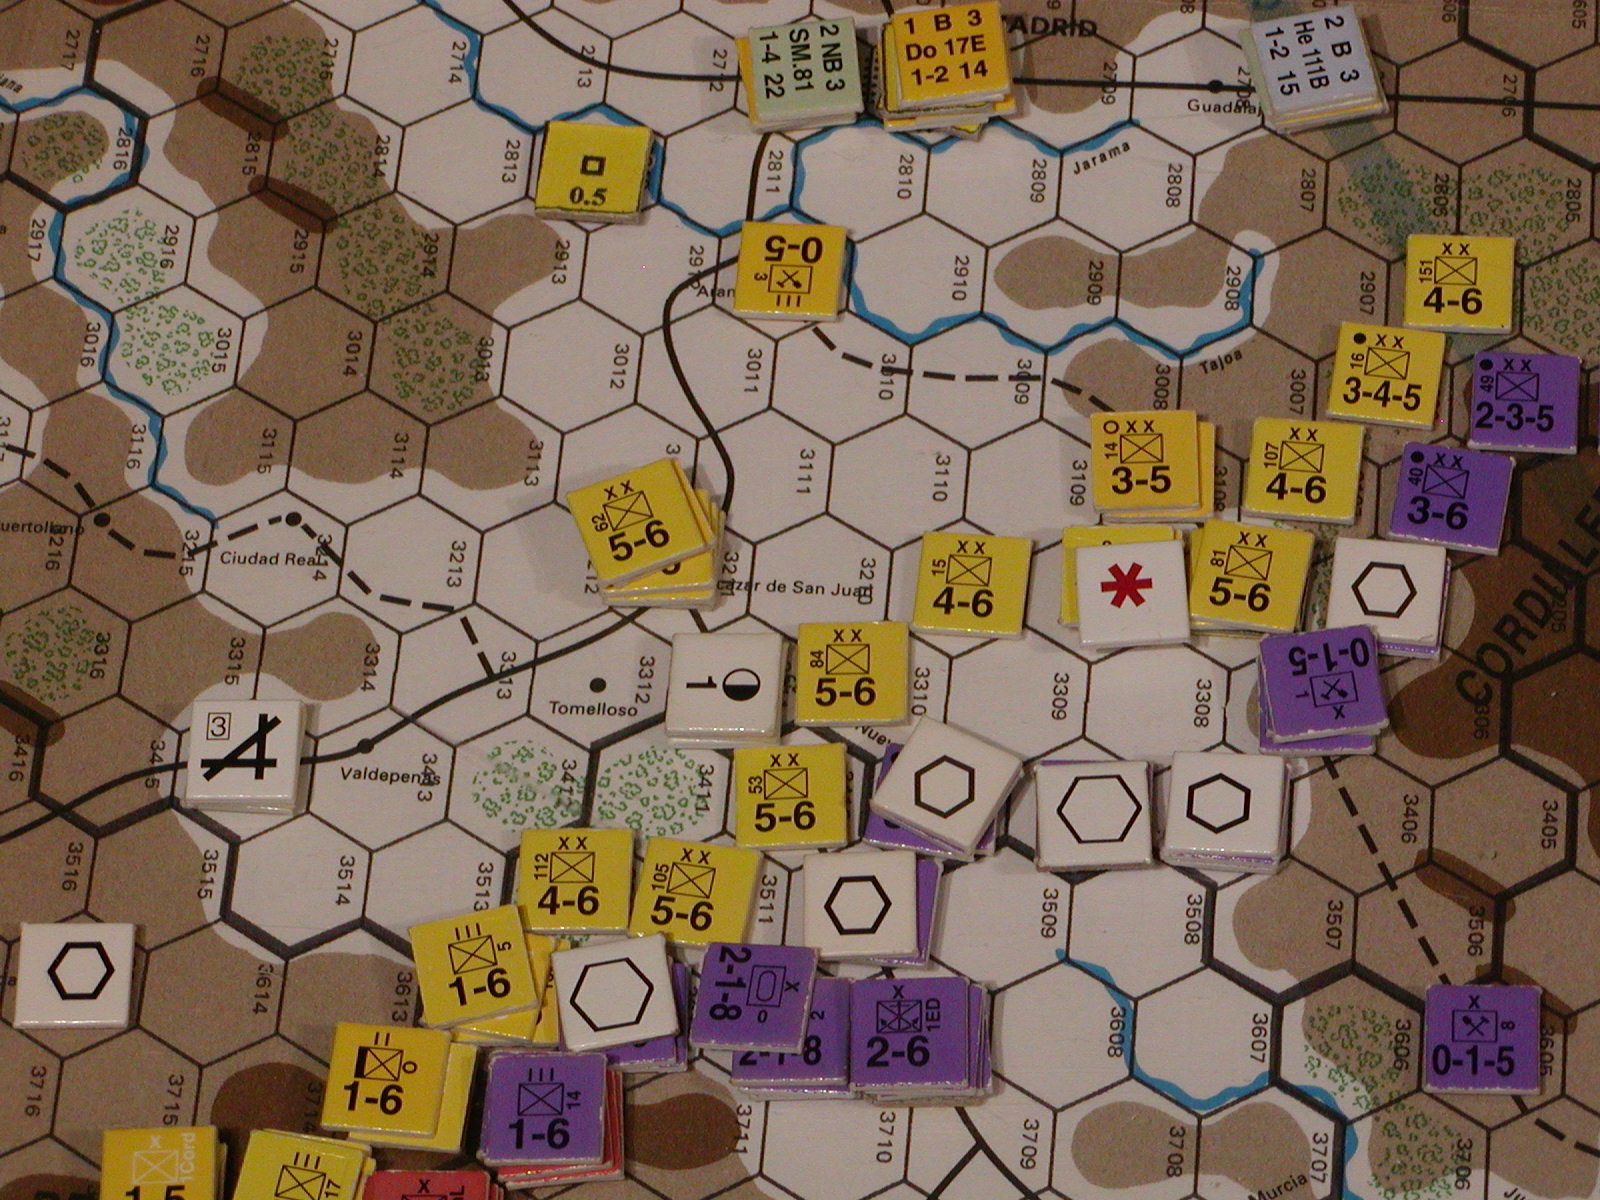 The Republic pulls back to original fortified lines on the Albecete front